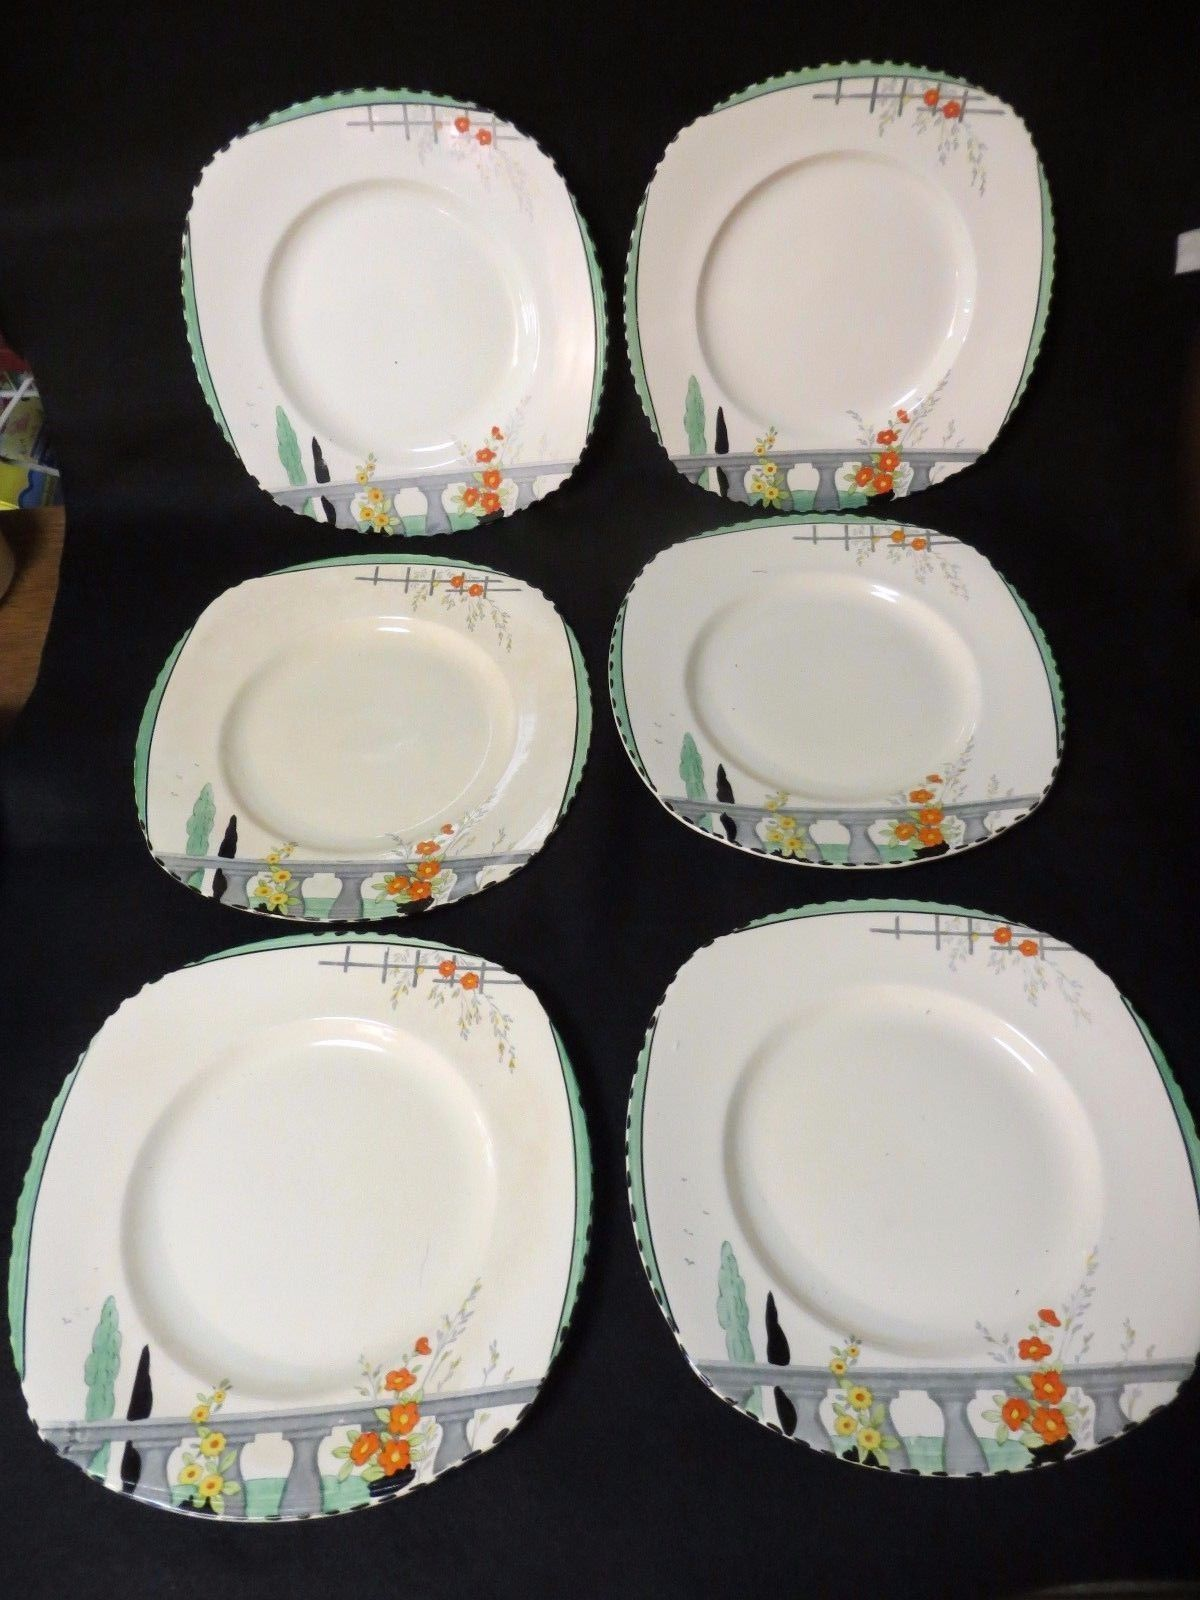 Burleigh ware Riviera dinner plates- set of 6 & Burleigh ware Riviera dinner plates- set of 6 | Dinner plate sets ...